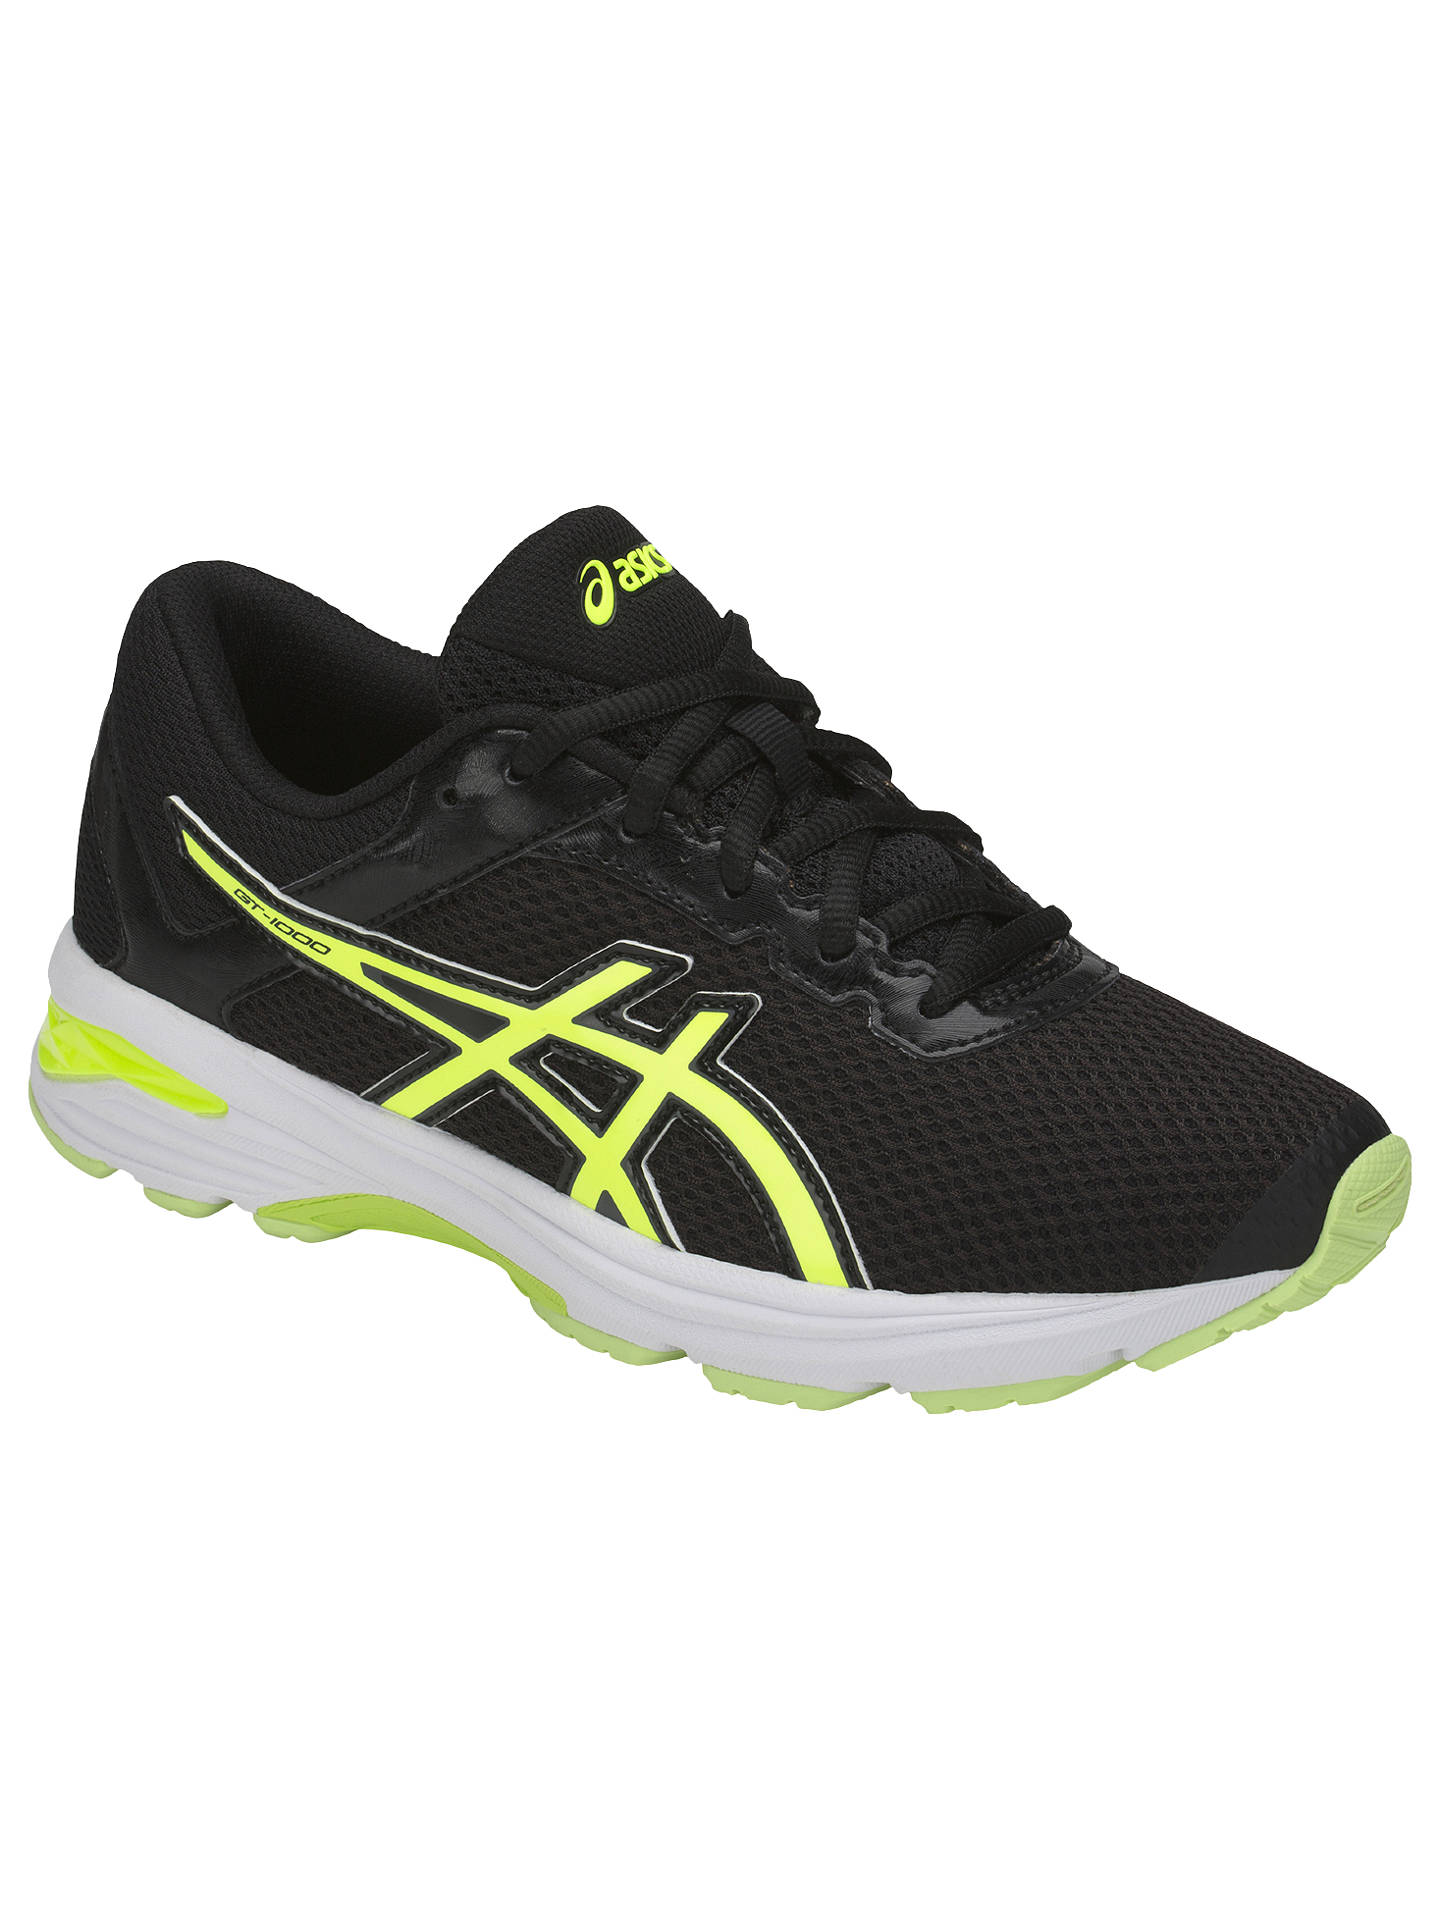 Men's Yellow Black Asics Gt 1000 6 Gs Junior Running Shoes